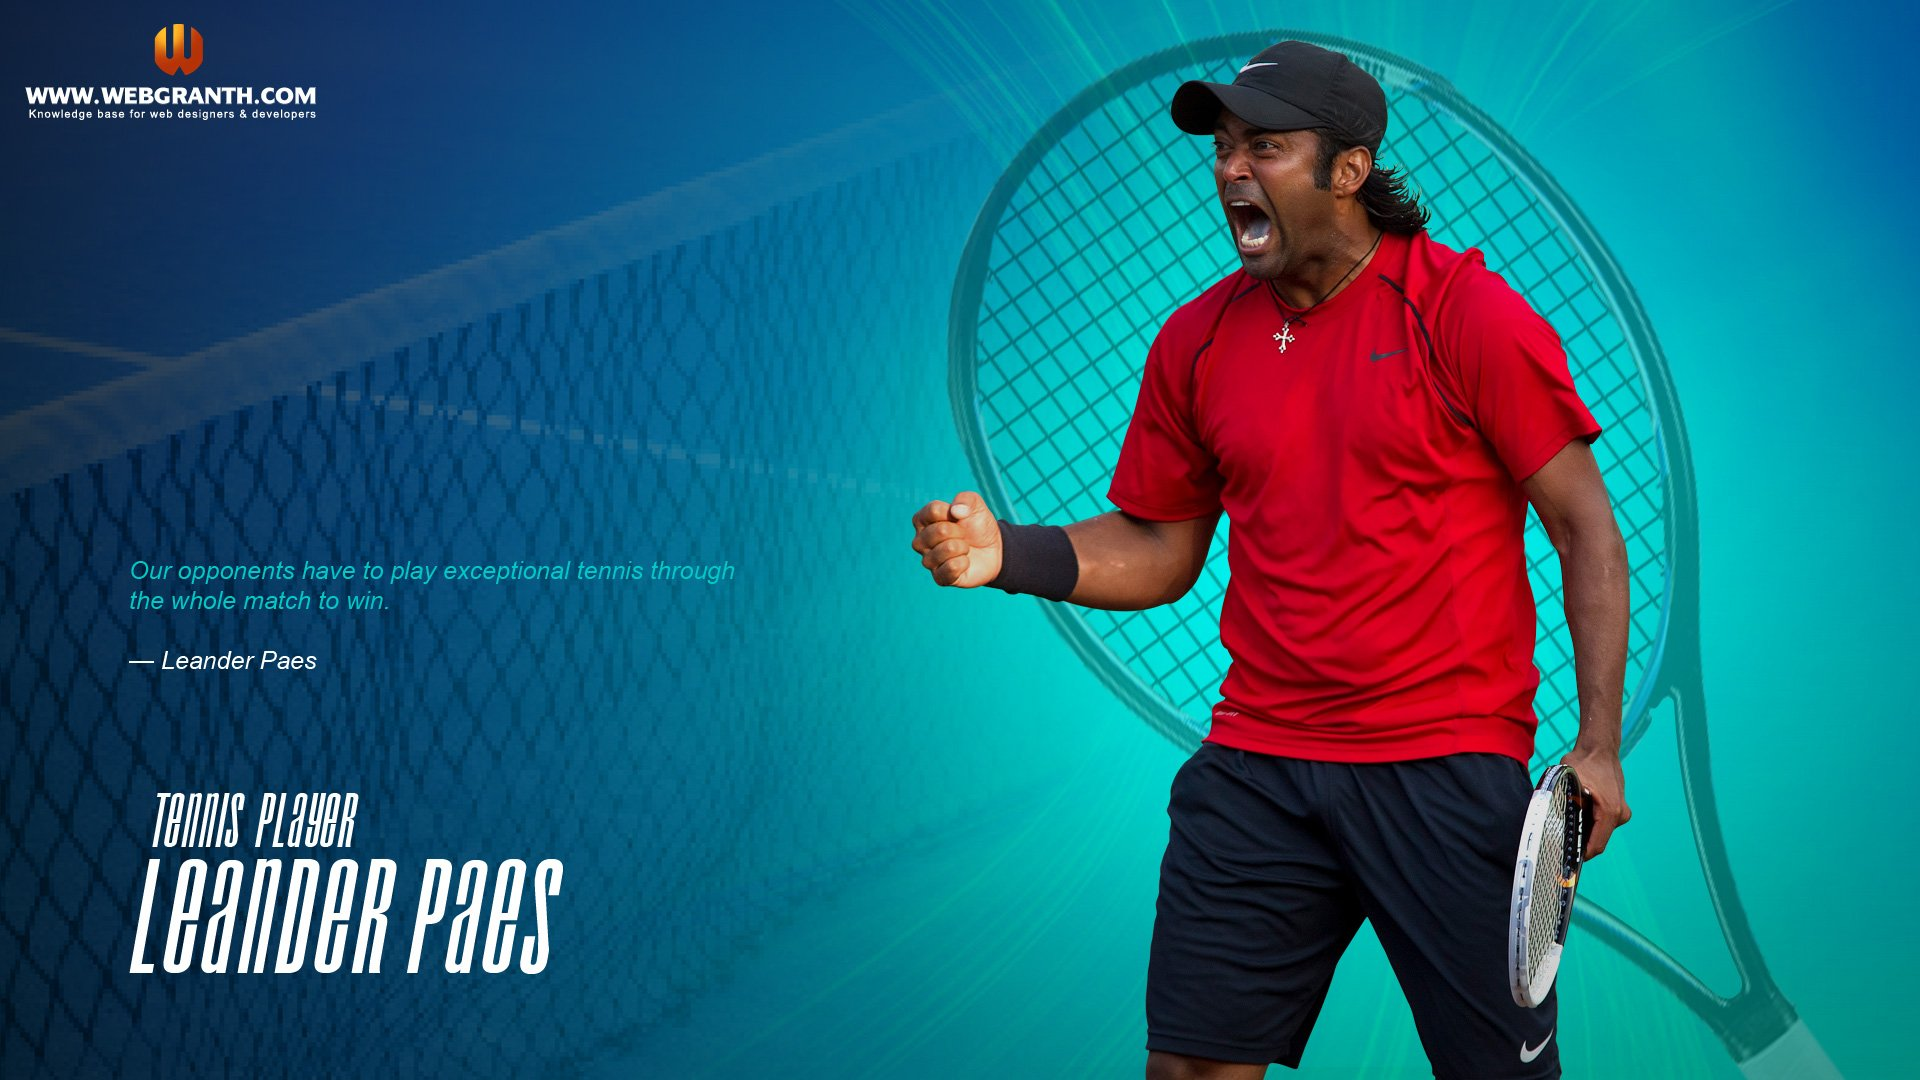 Latest-Leander-Paes-Tennis-Wallpaper-2013-3.jpg